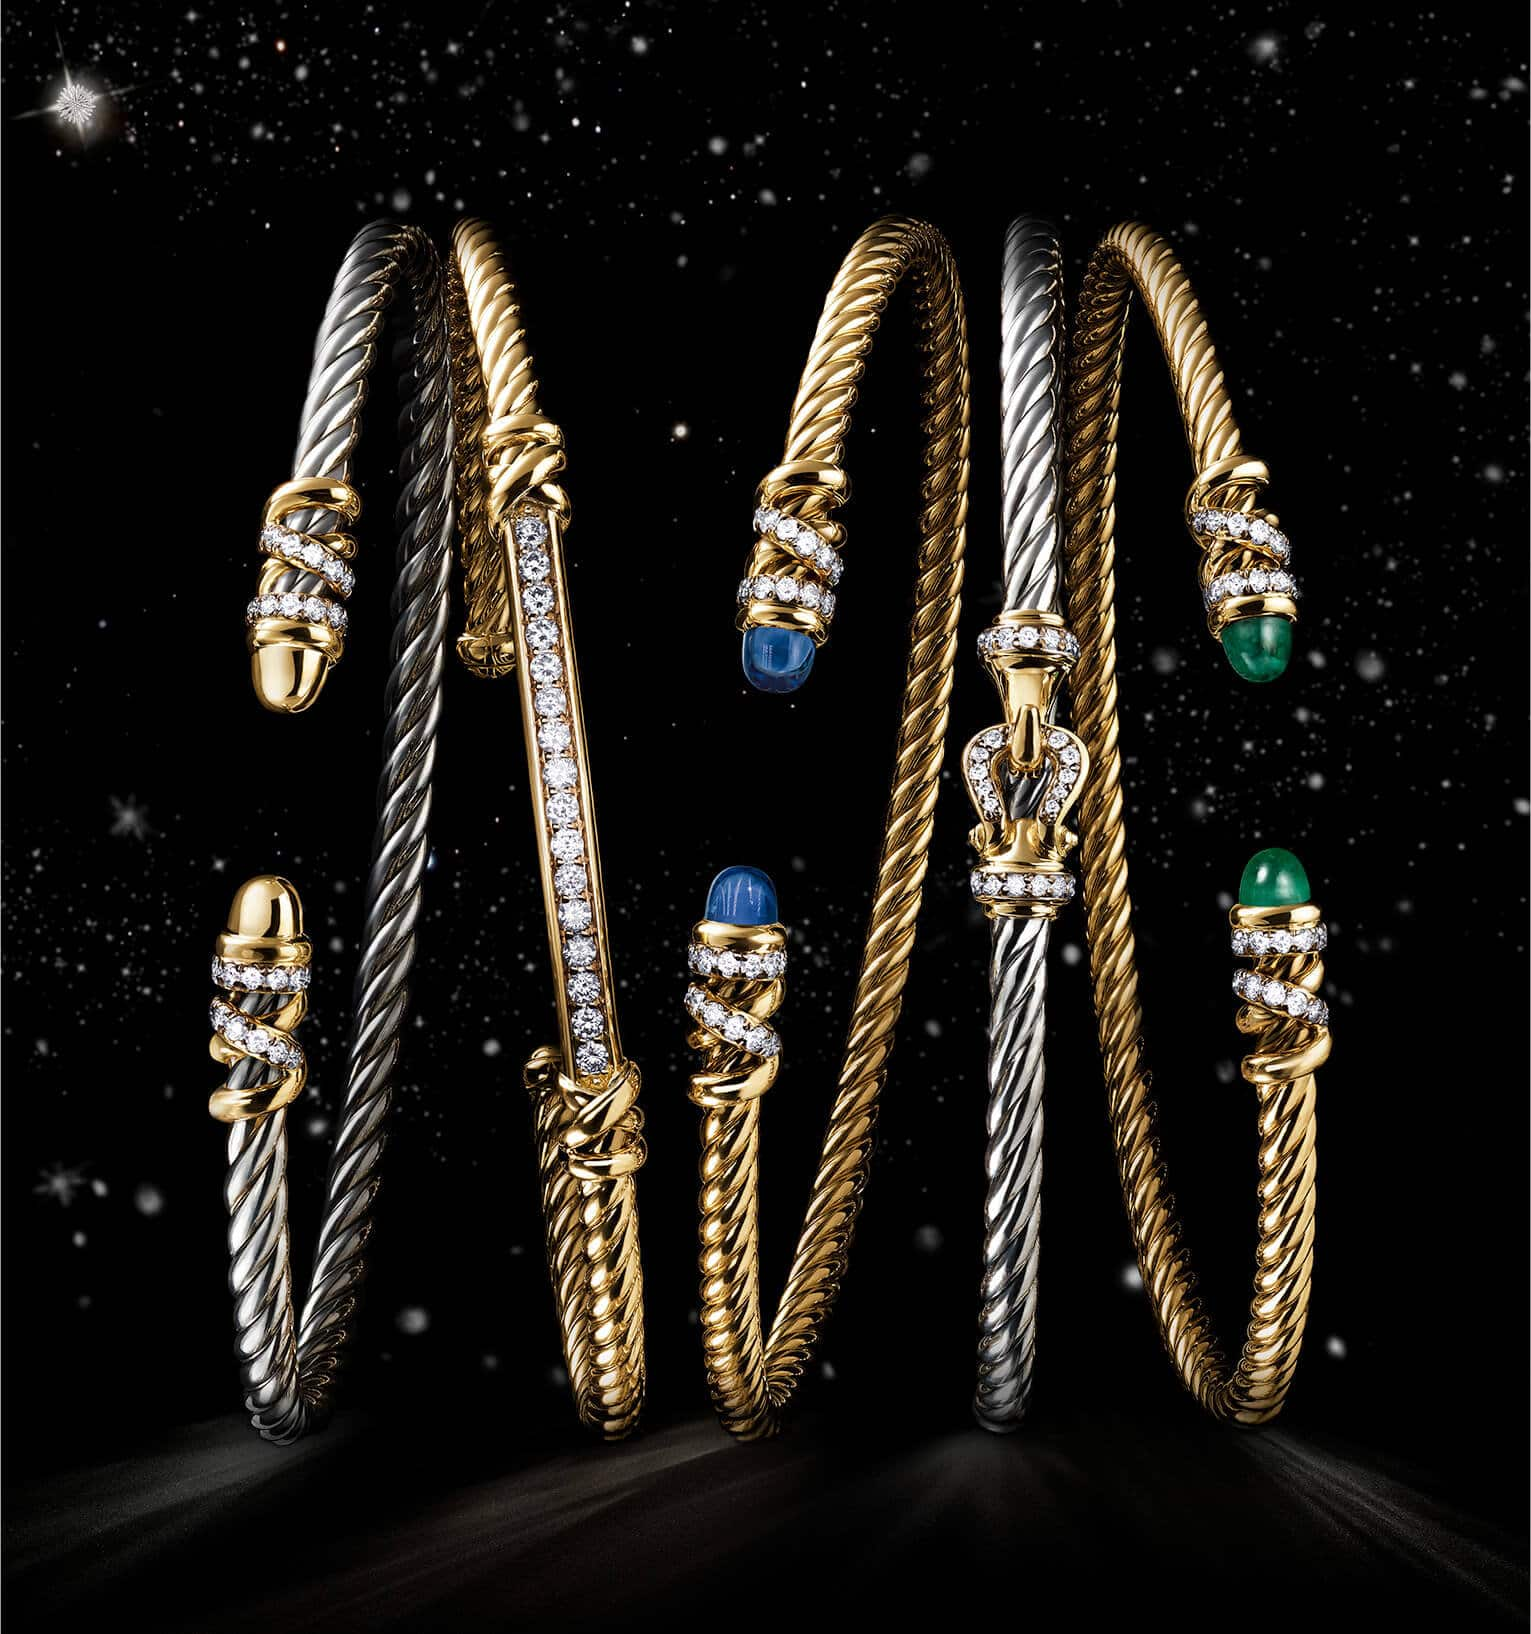 A color photo shows an overhead shot of a horizontal stack of five David Yurman bracelets from the Helena and Buckle collections floating in a starry night sky. Three of the women's bracelets are crafted from 18K yellow gold with pavé diamond, emerald or tanzanite accents. Two of the women's bracelets are crafted from sterling silver with 18K yellow gold and pavé diamond accents.